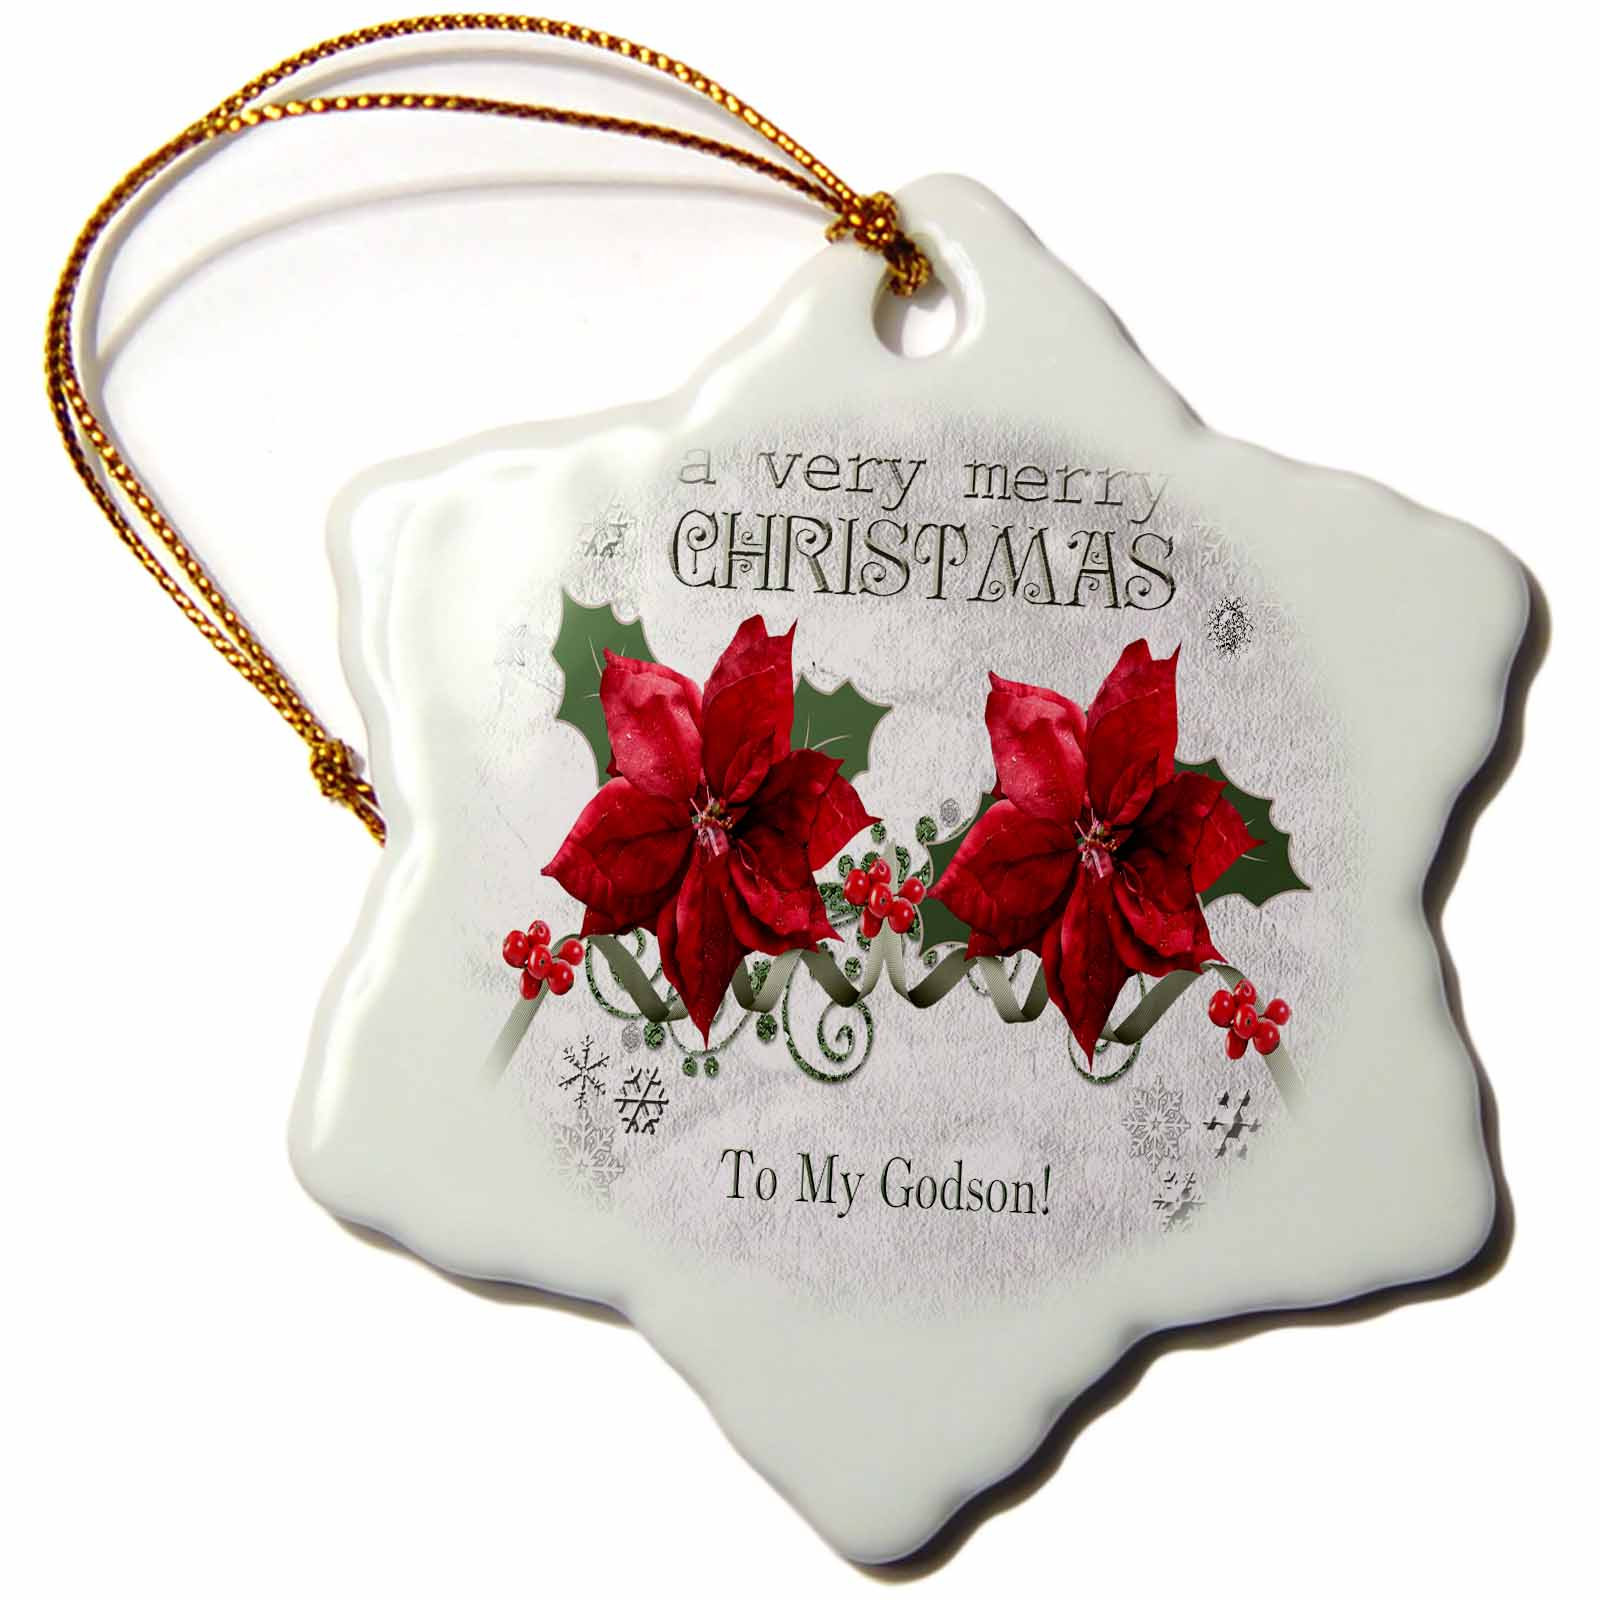 3dRose Berries and Poinsettias, a very merry Christmas, To My Godson, Snowflake Ornament, Porcelain, 3-inch